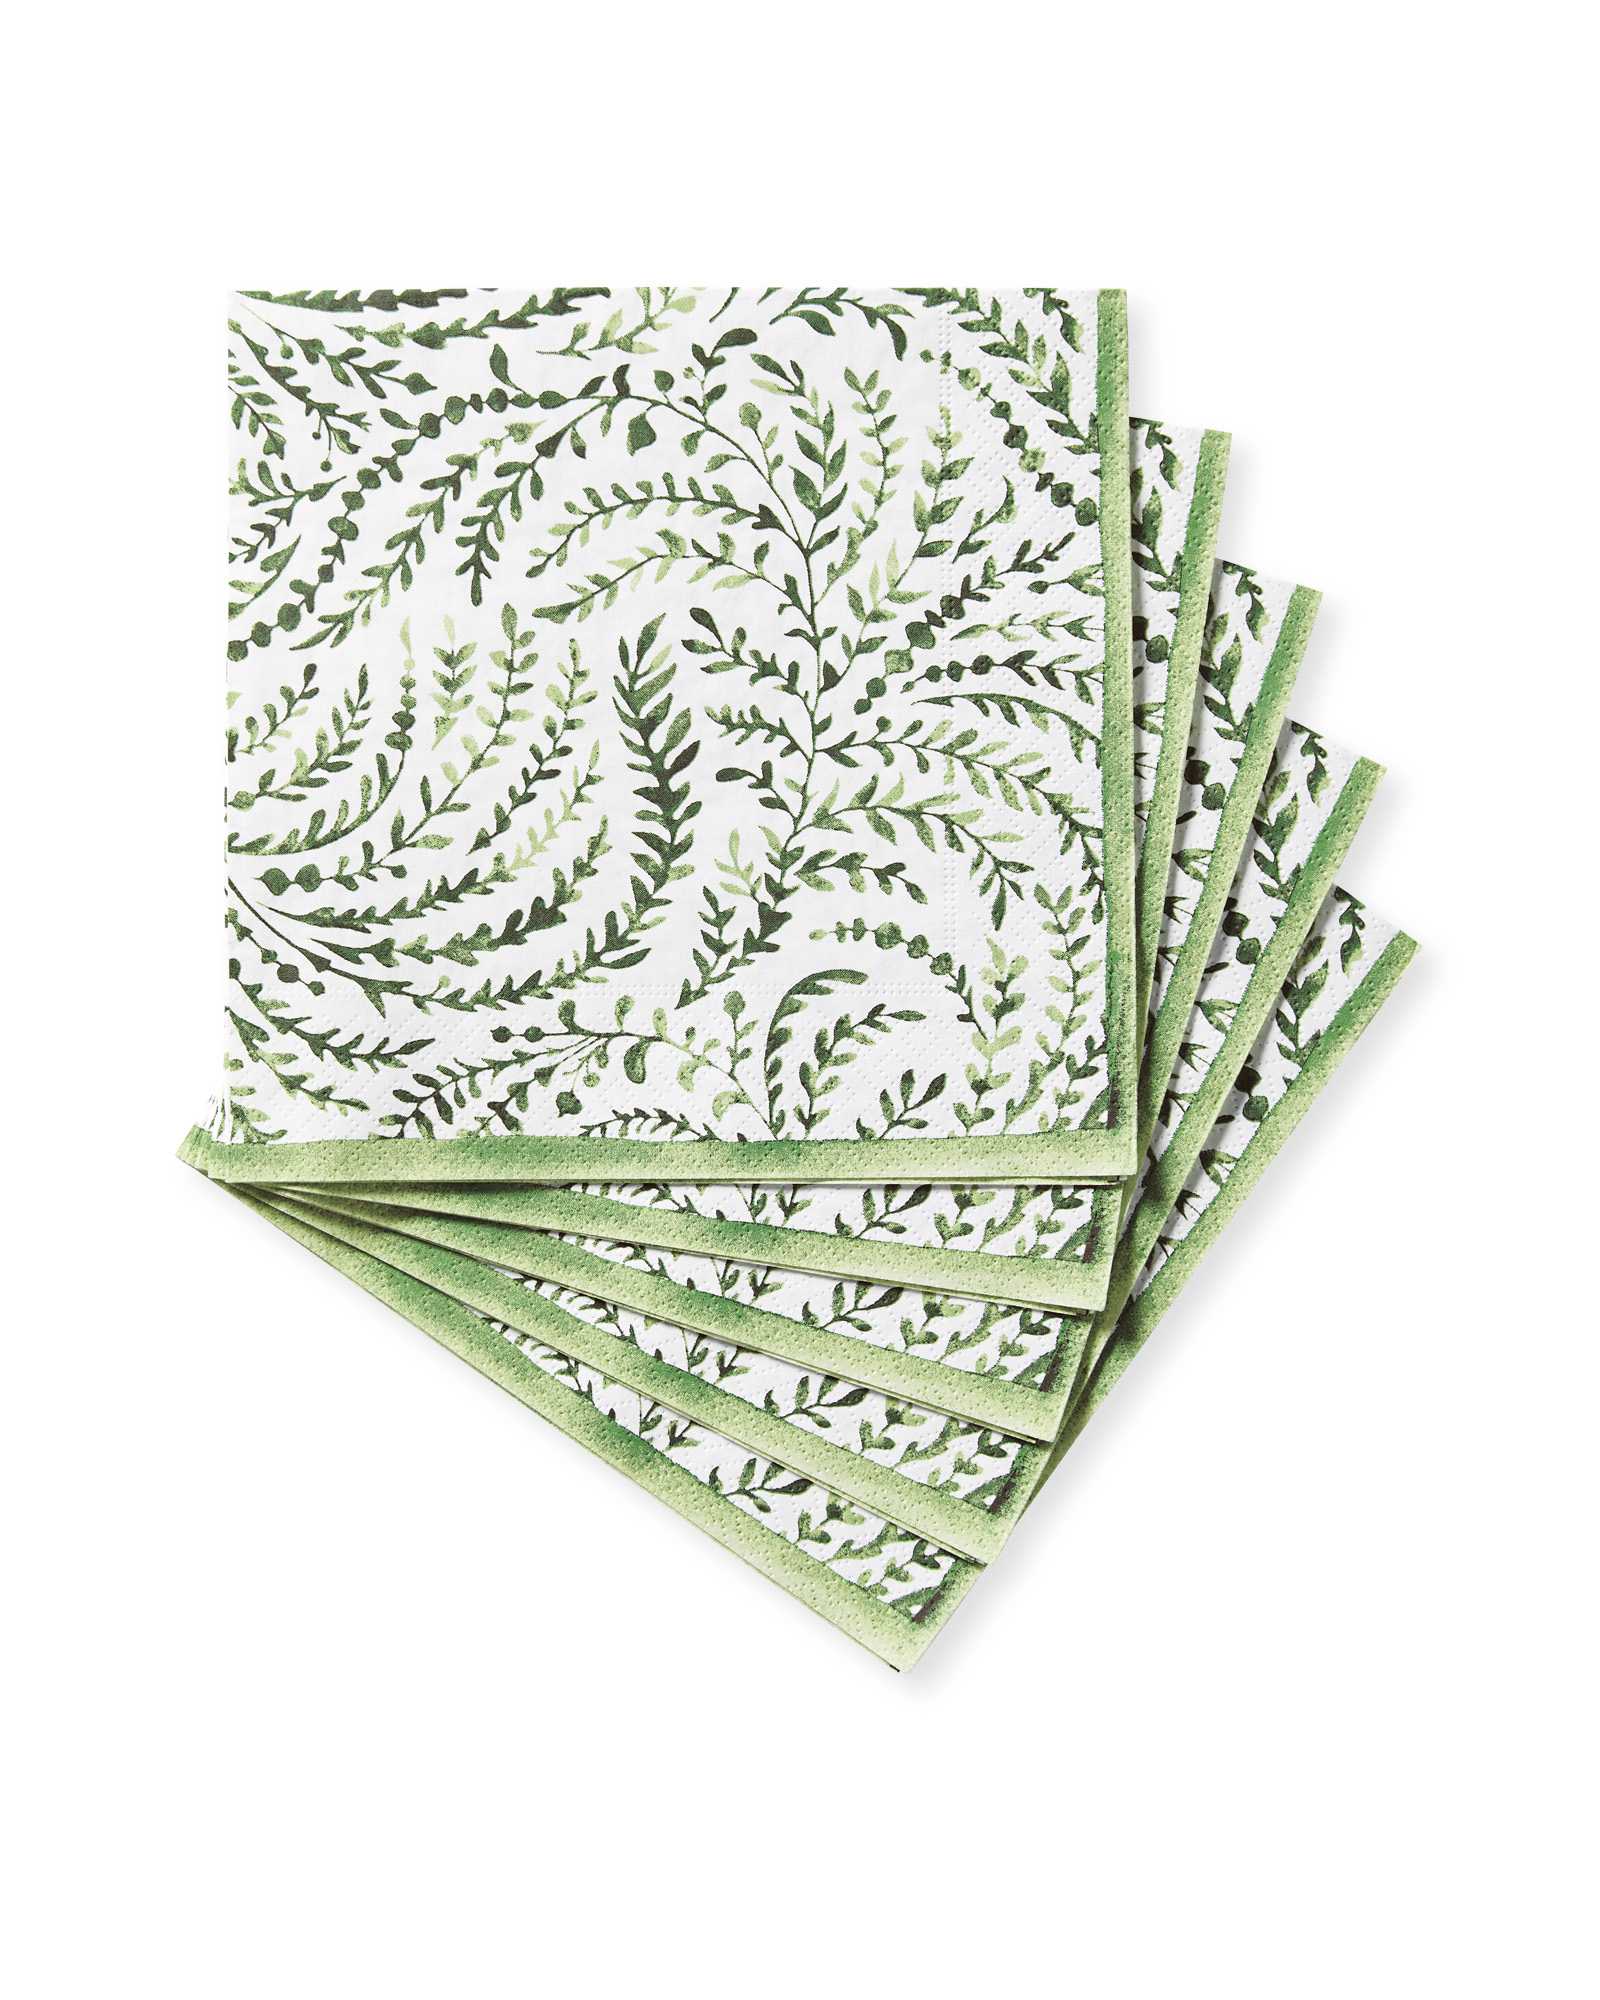 Priano Napkins - Luncheon, Green